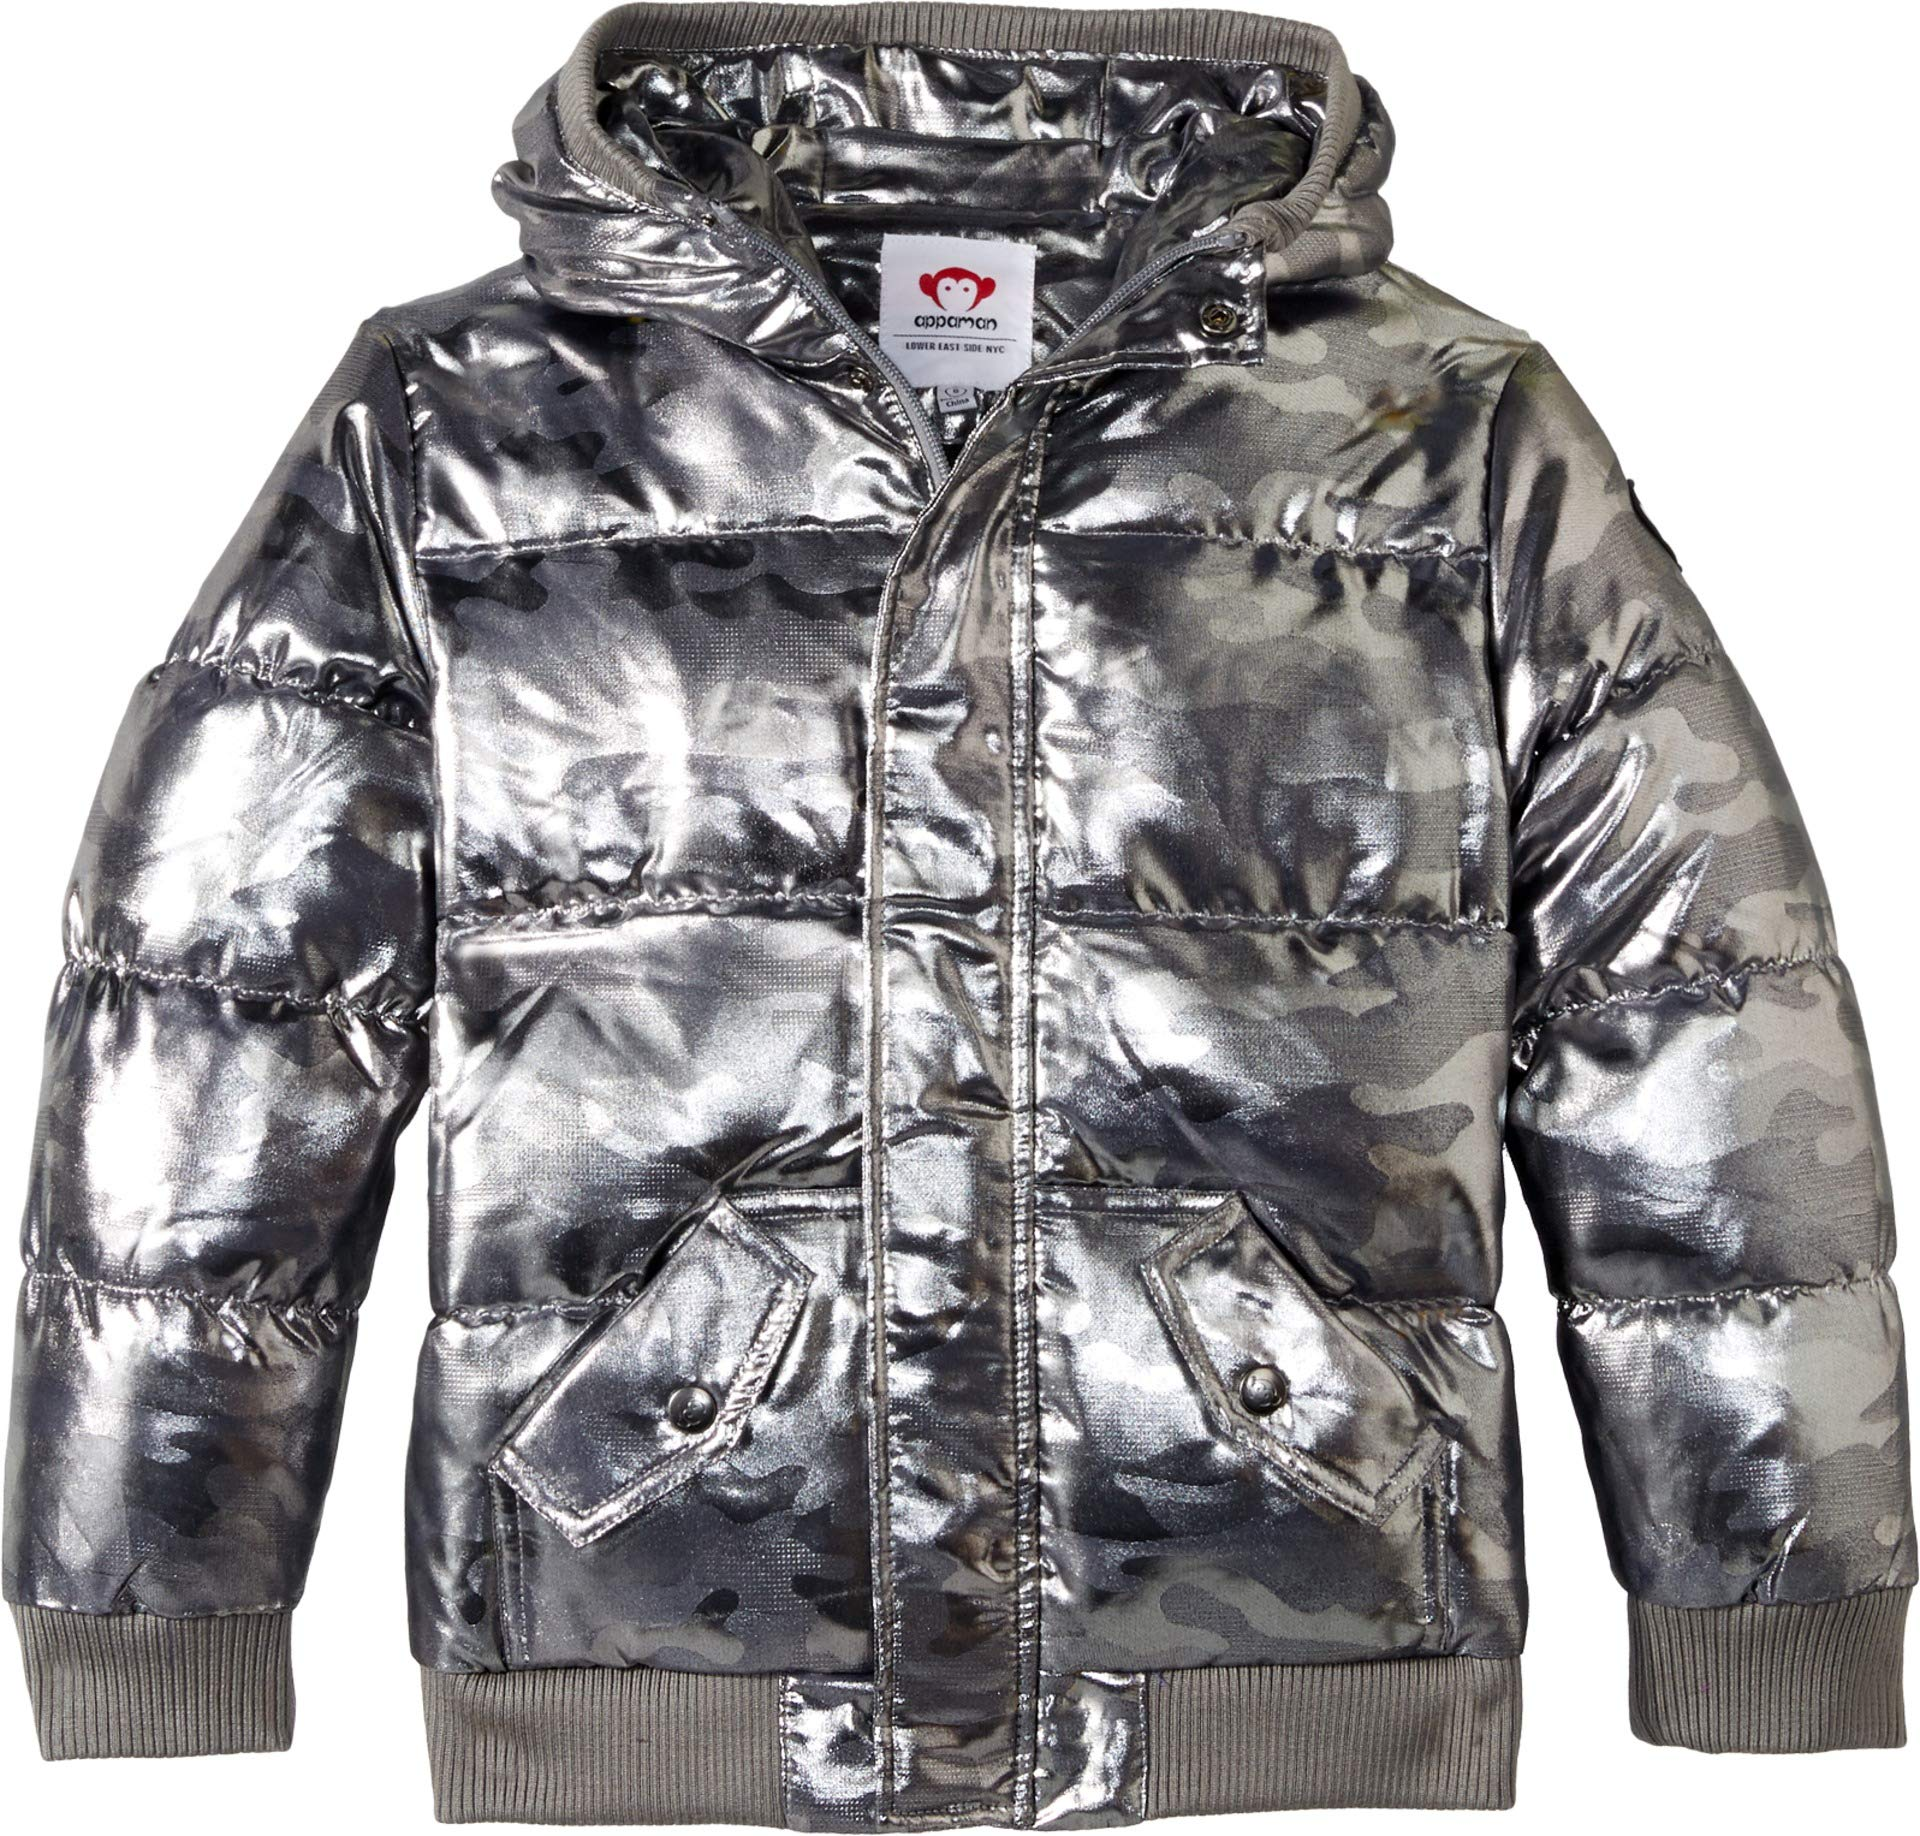 Appaman Kids Baby Boy's Puffy Coat with Hood and Front Pockets (Infant/Toddler/Little Kids/Big Kids) Gunmetal Camo 4 US Toddler